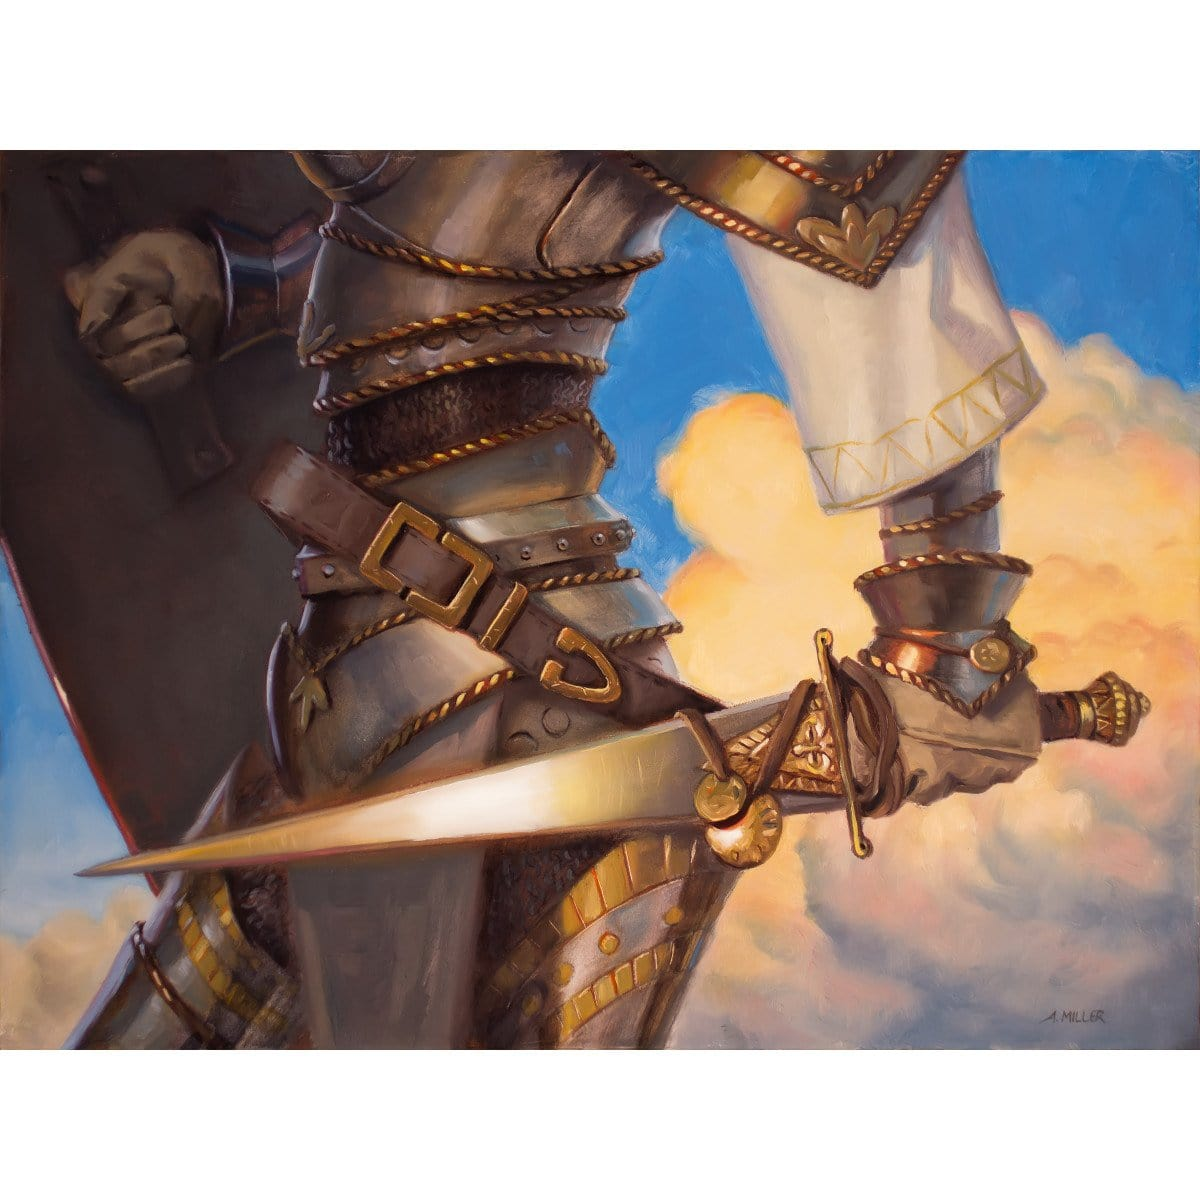 Veteran's Sidearm Print - Print - Original Magic Art - Accessories for Magic the Gathering and other card games